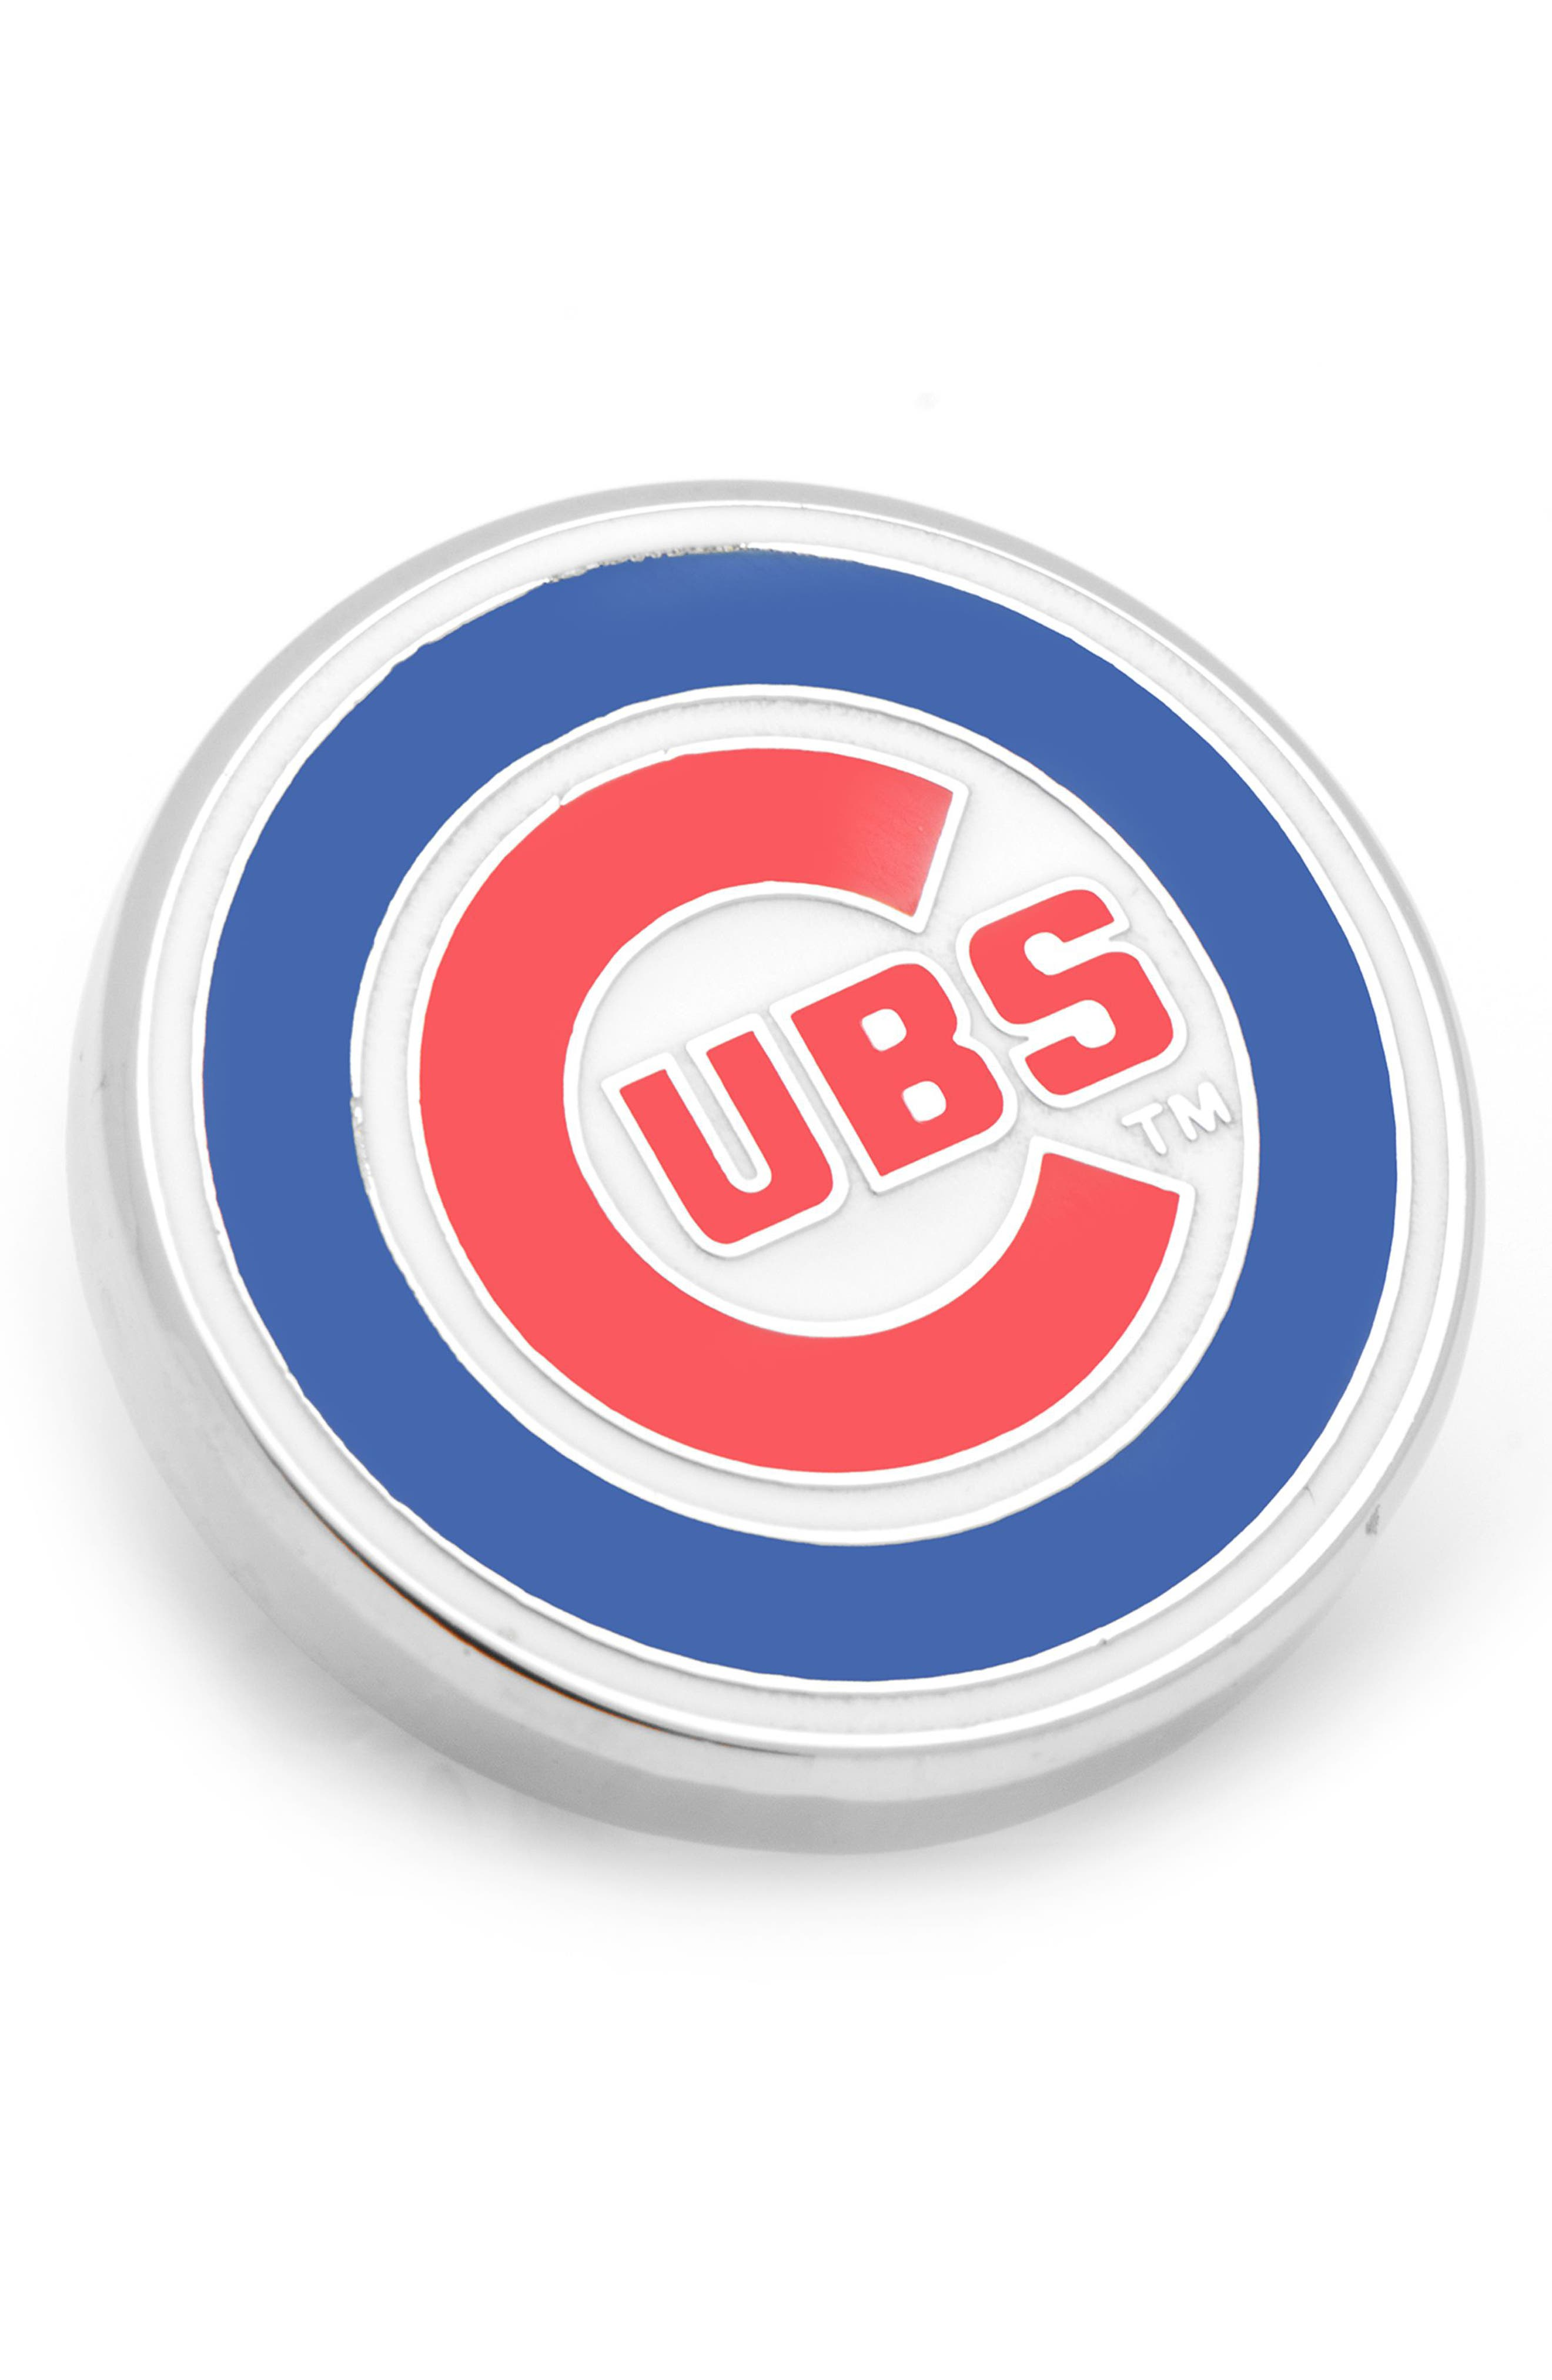 Chicago Cubs Lapel Pin,                             Main thumbnail 1, color,                             BLUE/ RED